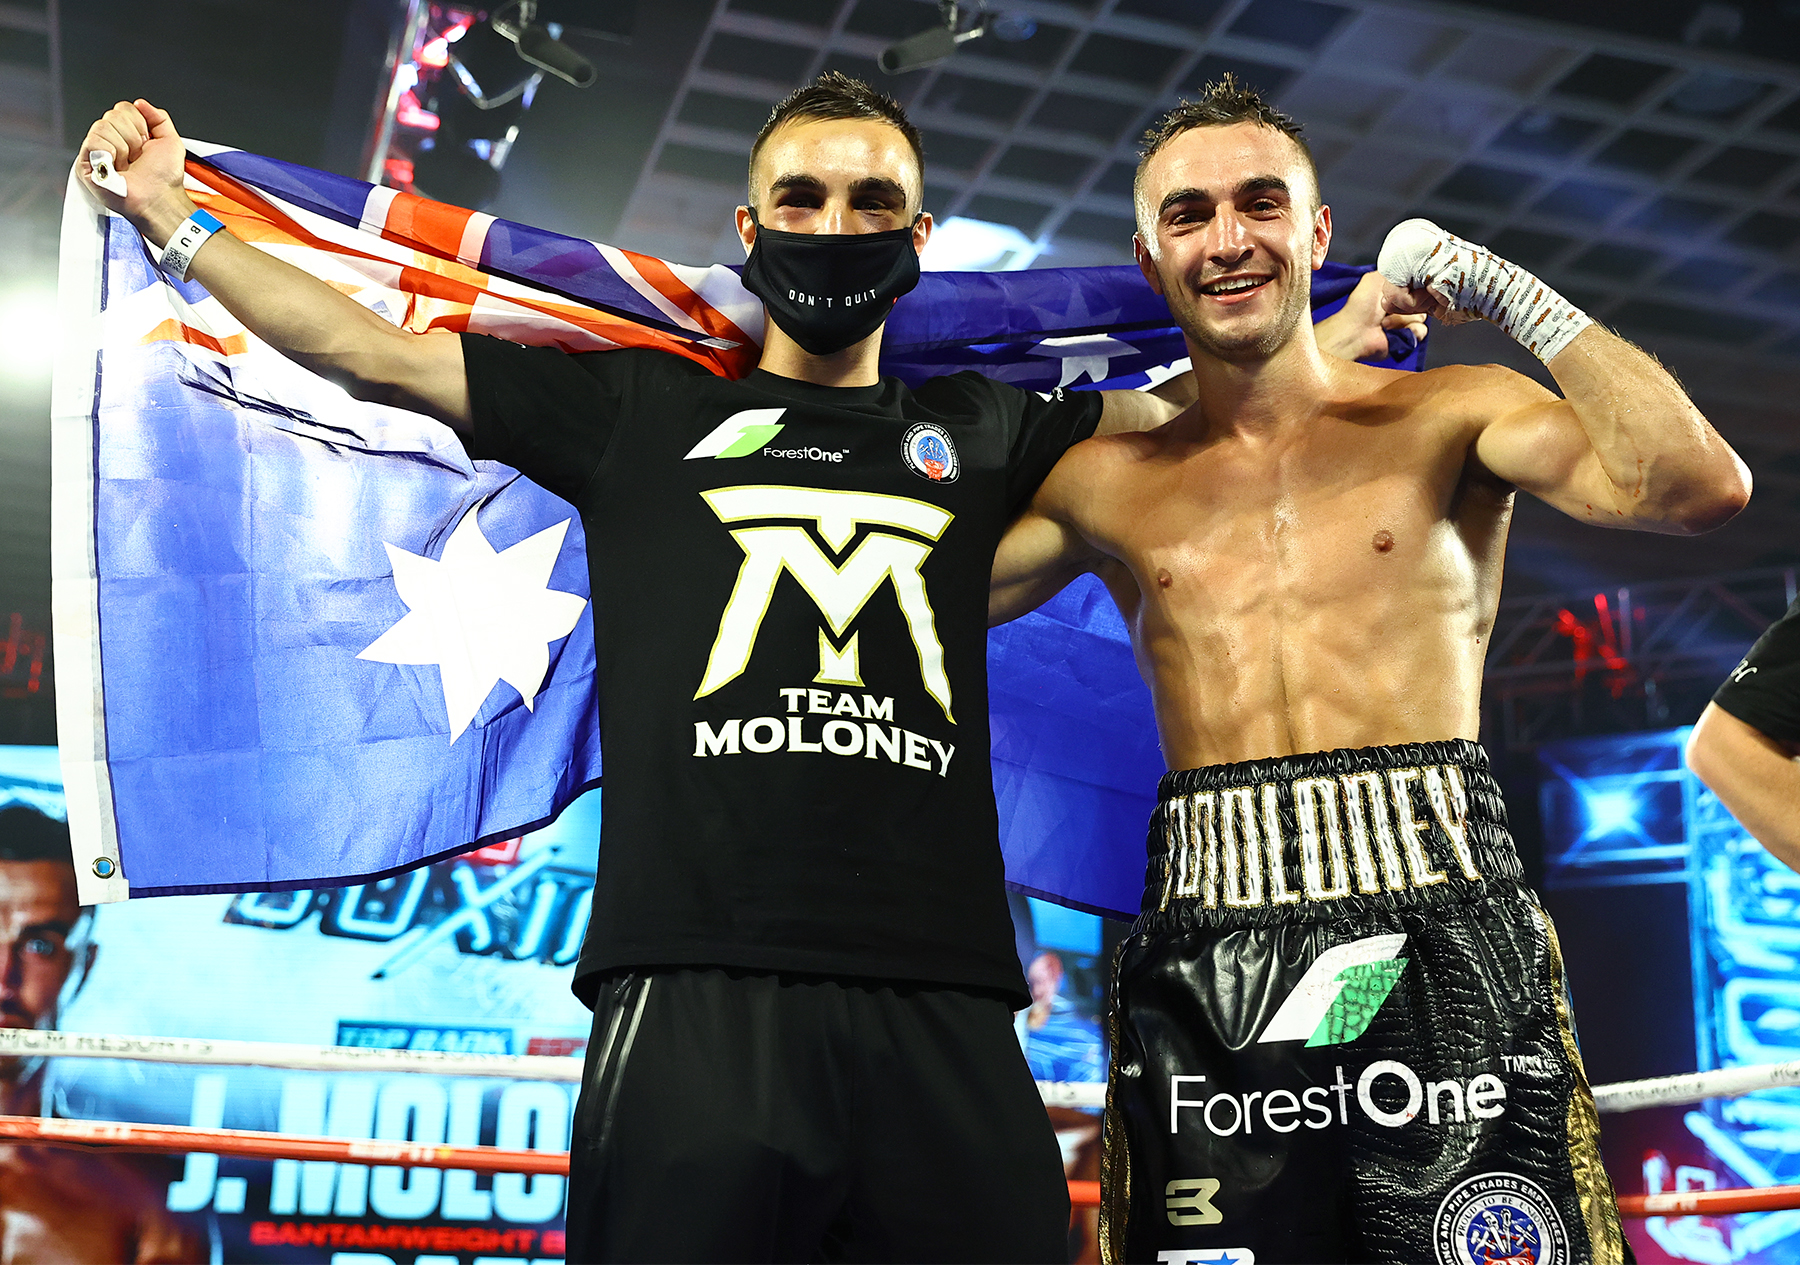 Andrew Moloney & Jason Moloney